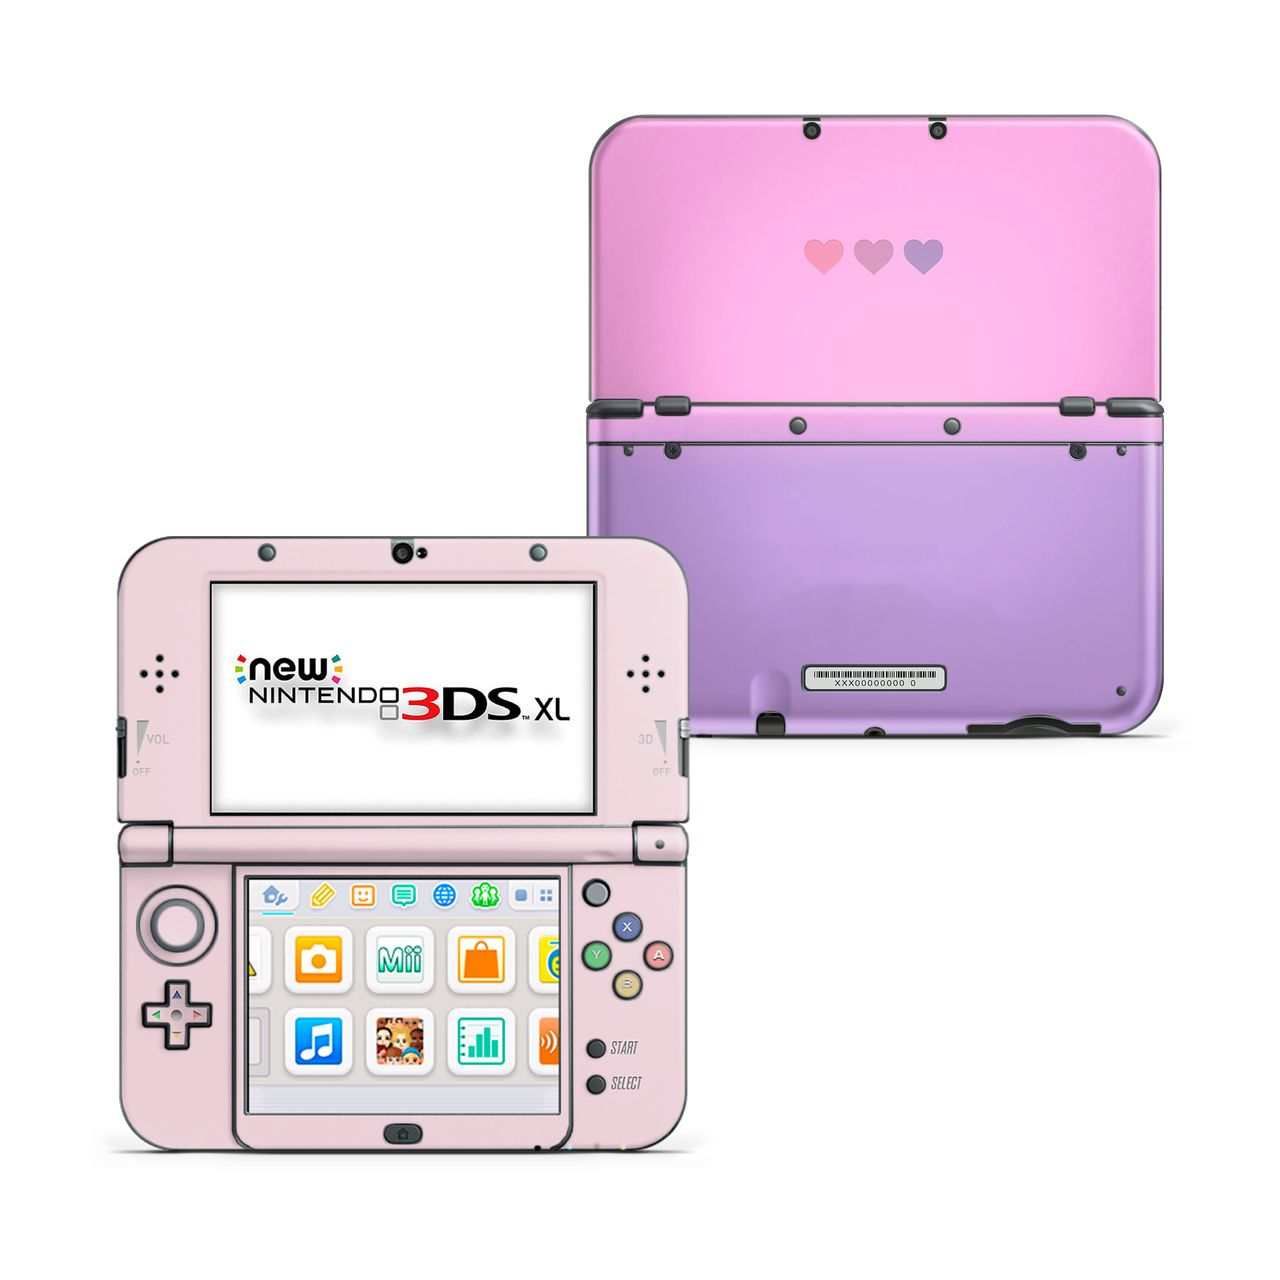 New 3ds Xl Pokemon Xy Red Limited Edition Vinyl Skin Sticker Decal Cover For New Nintendo 3ds Xl Ll Conso Nintendo 3ds New Nintendo 3ds New Nintendo 3ds Xl